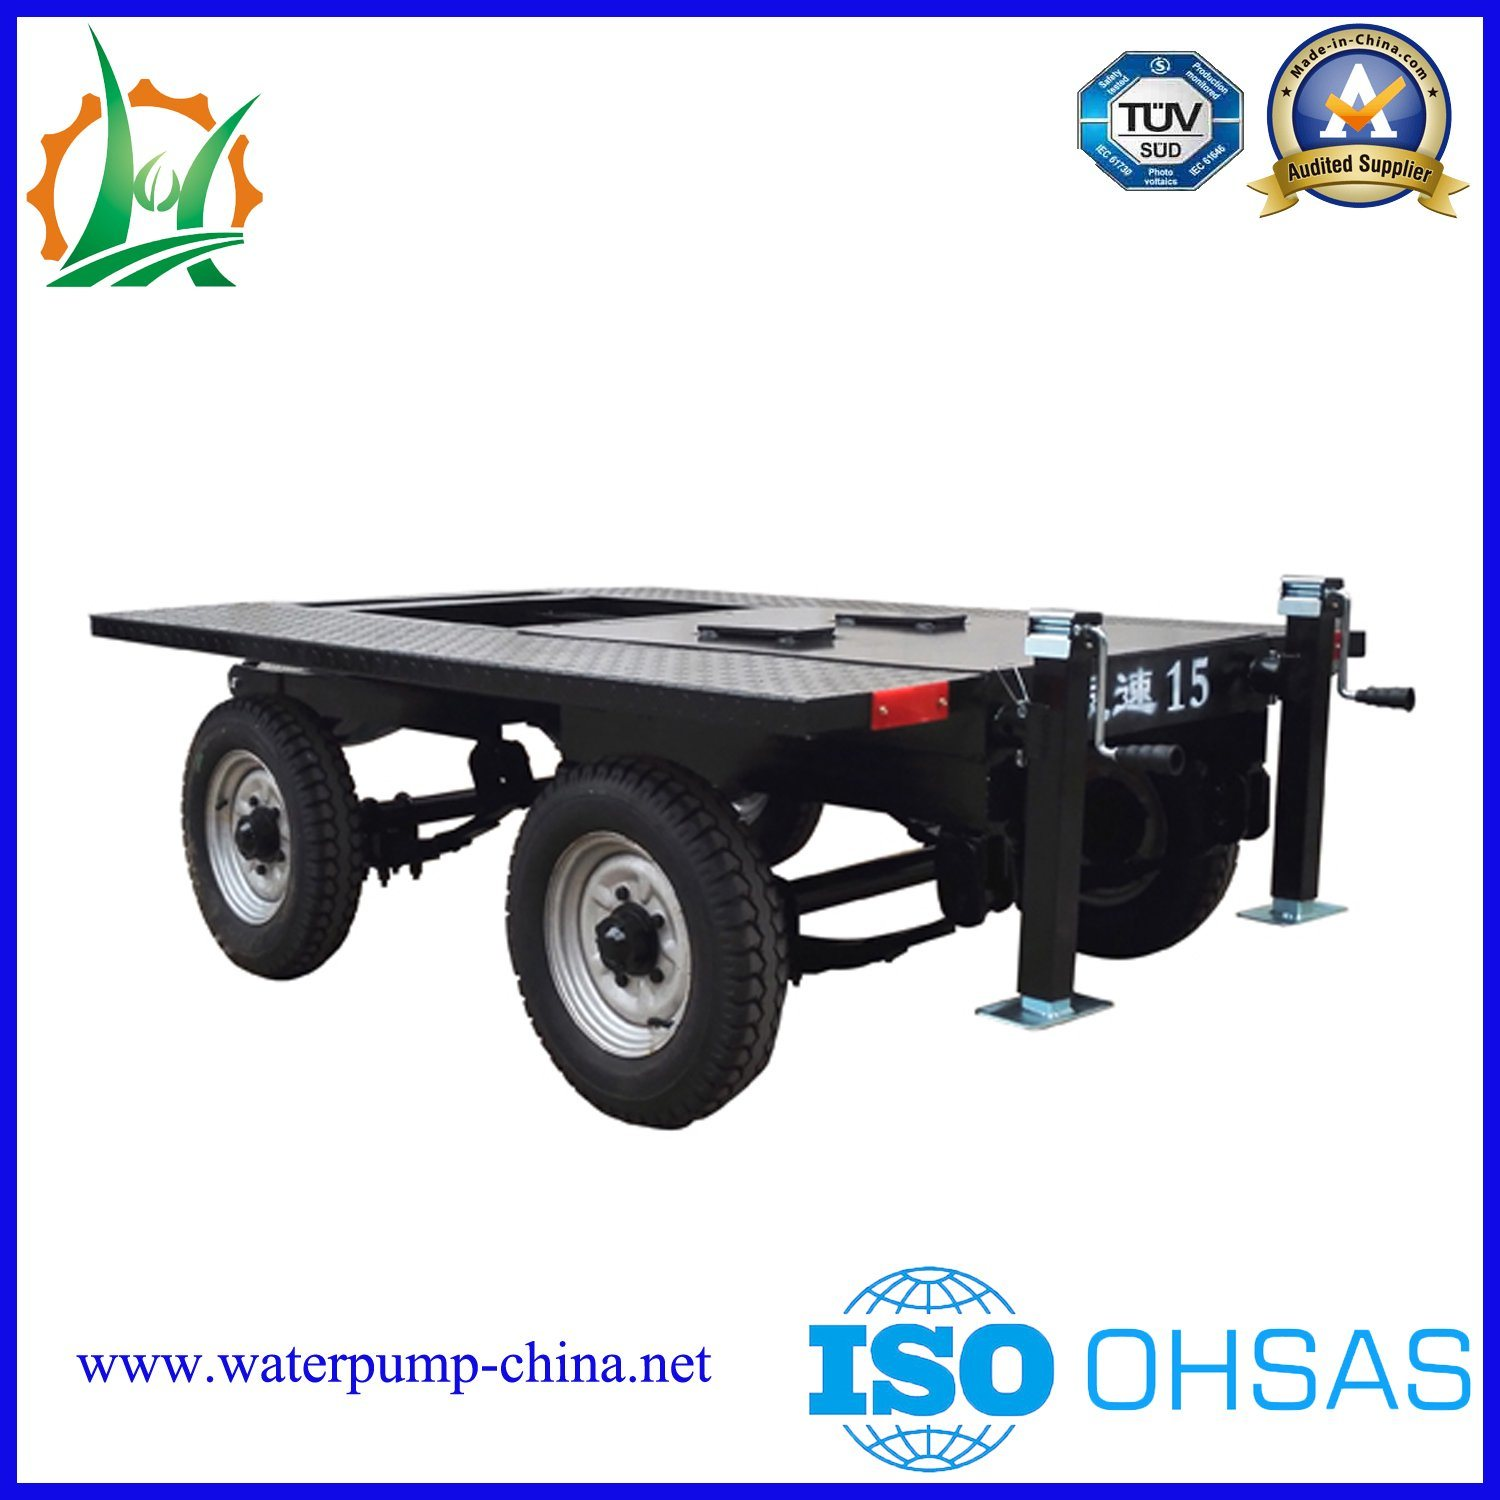 Mobile Big Flow of Diesel Dewatering Mixed-Flow Trailer Pump Sets